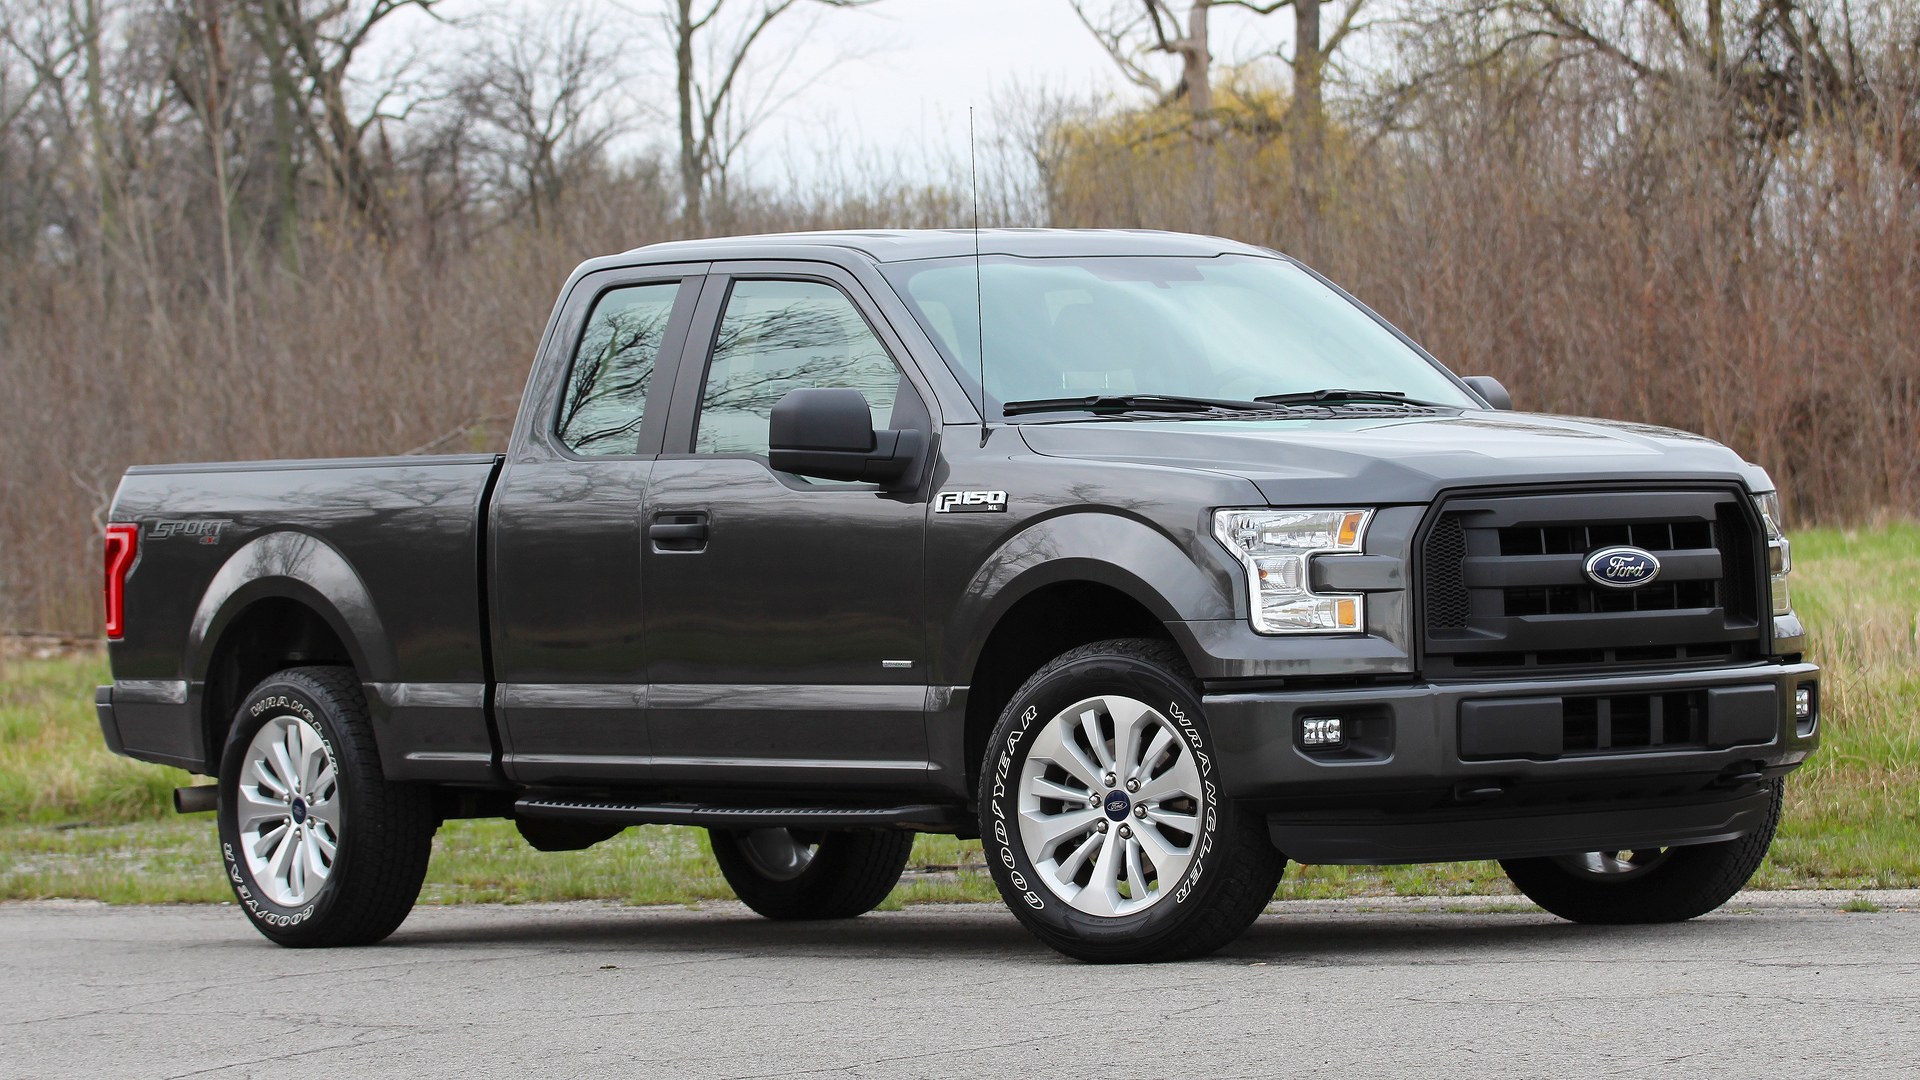 New Ford F150 >> Review: 2016 Ford F-150 XL 4x4